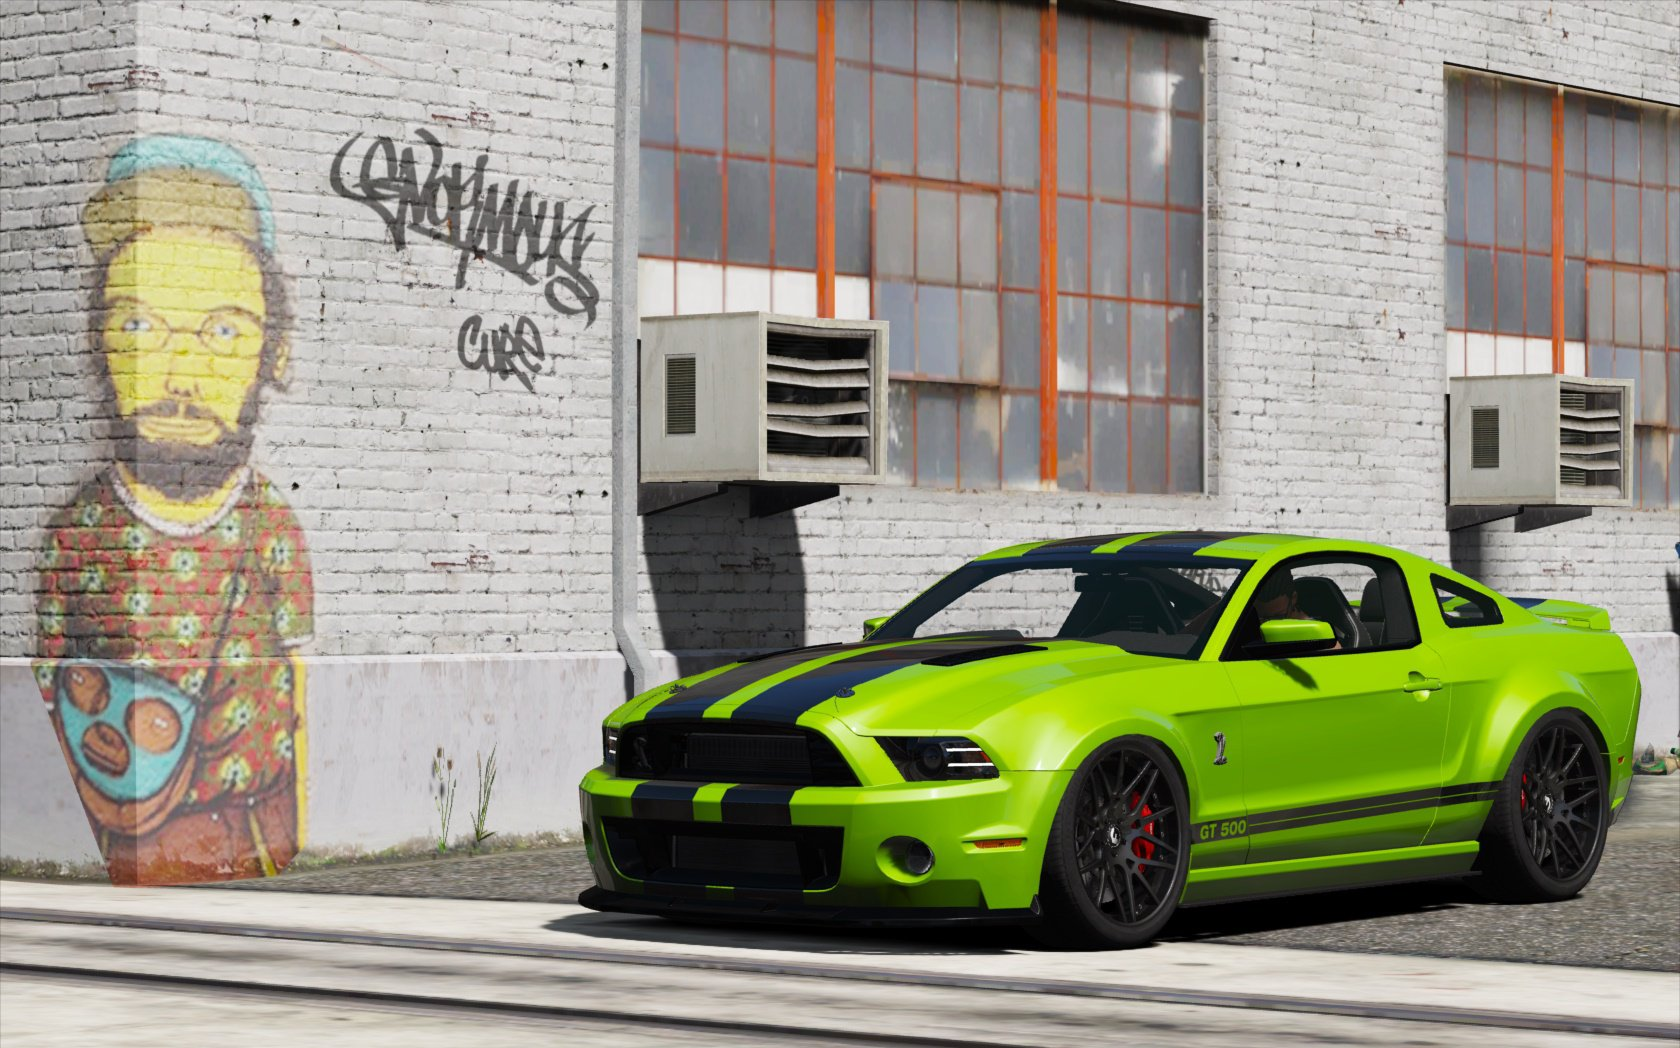 Ford Mustang Gt Nfs Gt500 2013 Add On Vehicules Pour